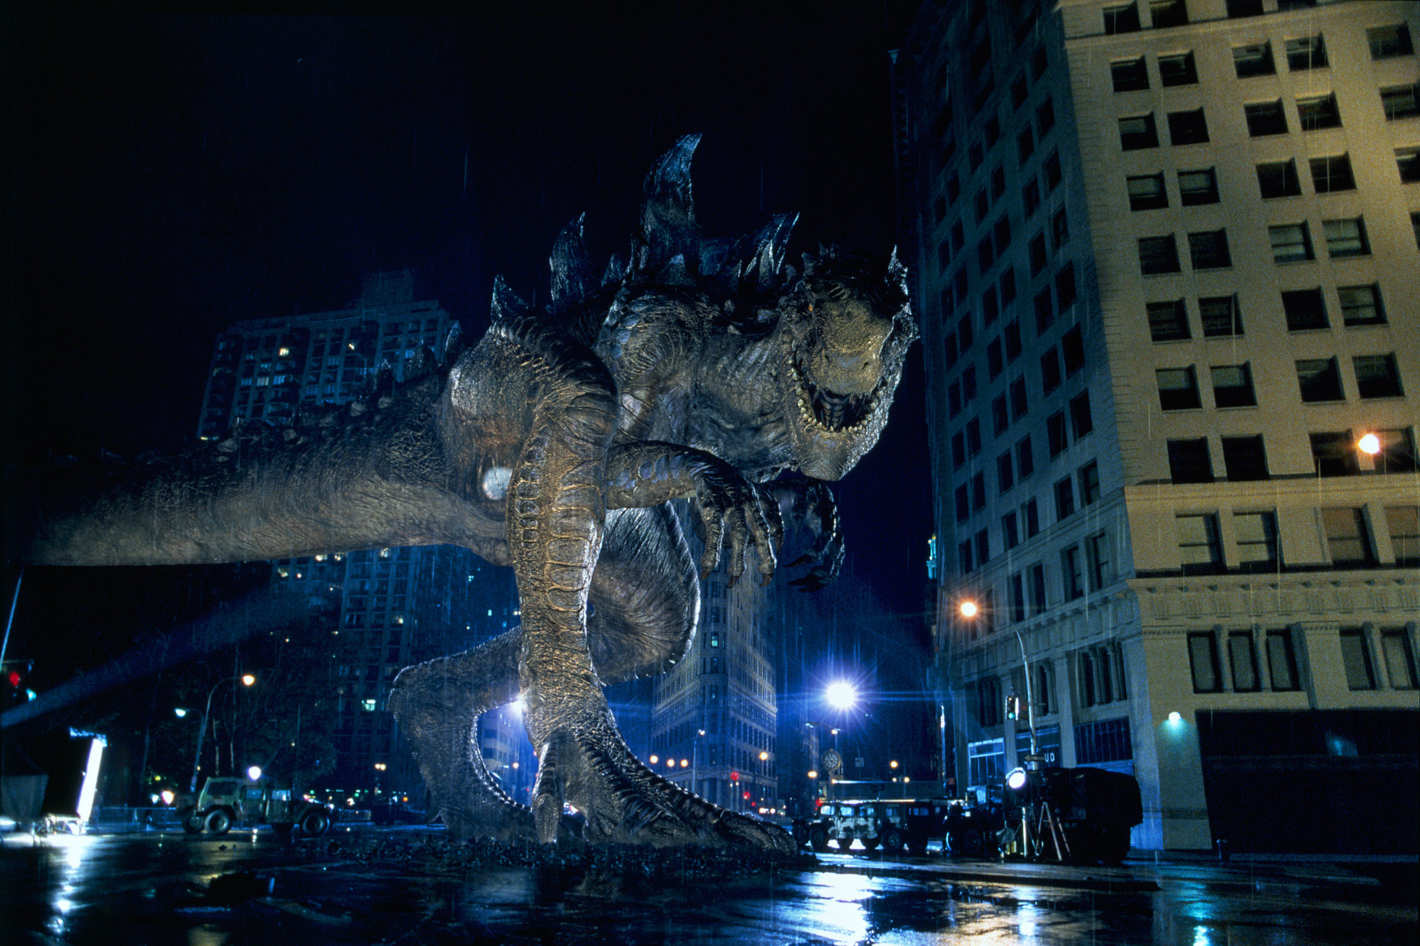 The big-budget American conception of Godzilla in Godzilla (1998)